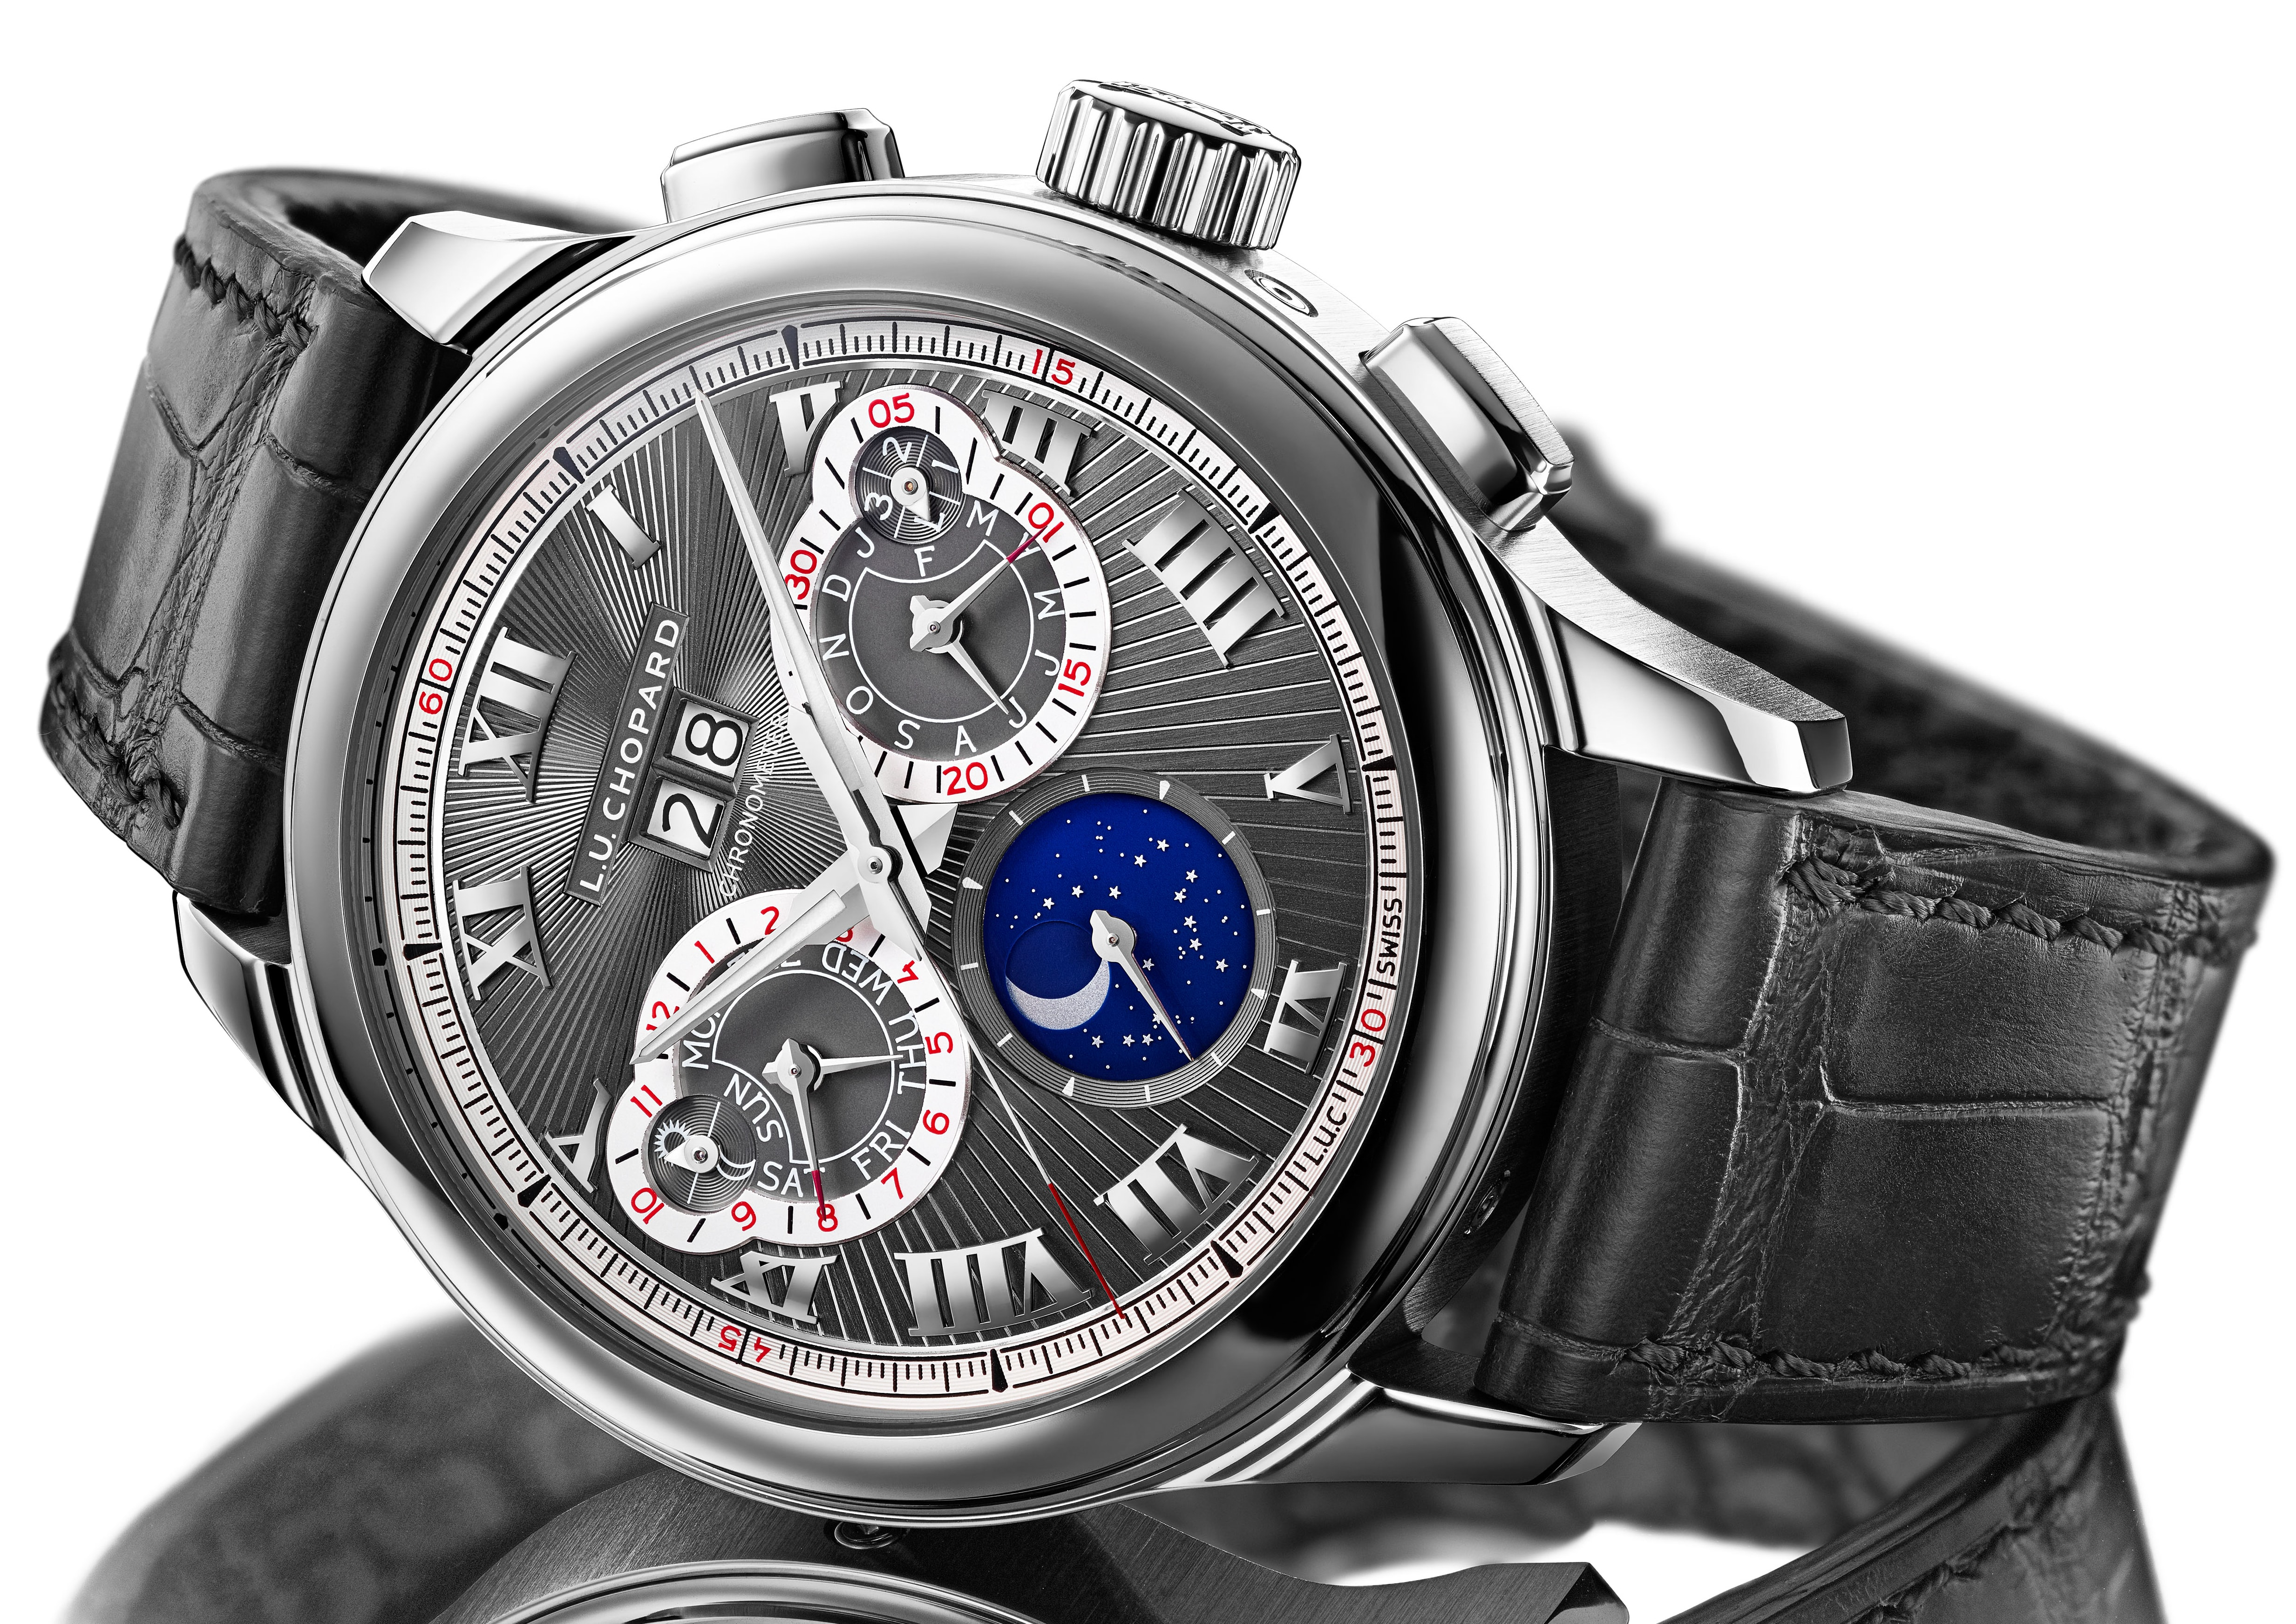 chopard luc perpetual chrono dial Introducing: The Chopard L.U.C. Perpetual Chrono Introducing: The Chopard L.U.C. Perpetual Chrono L